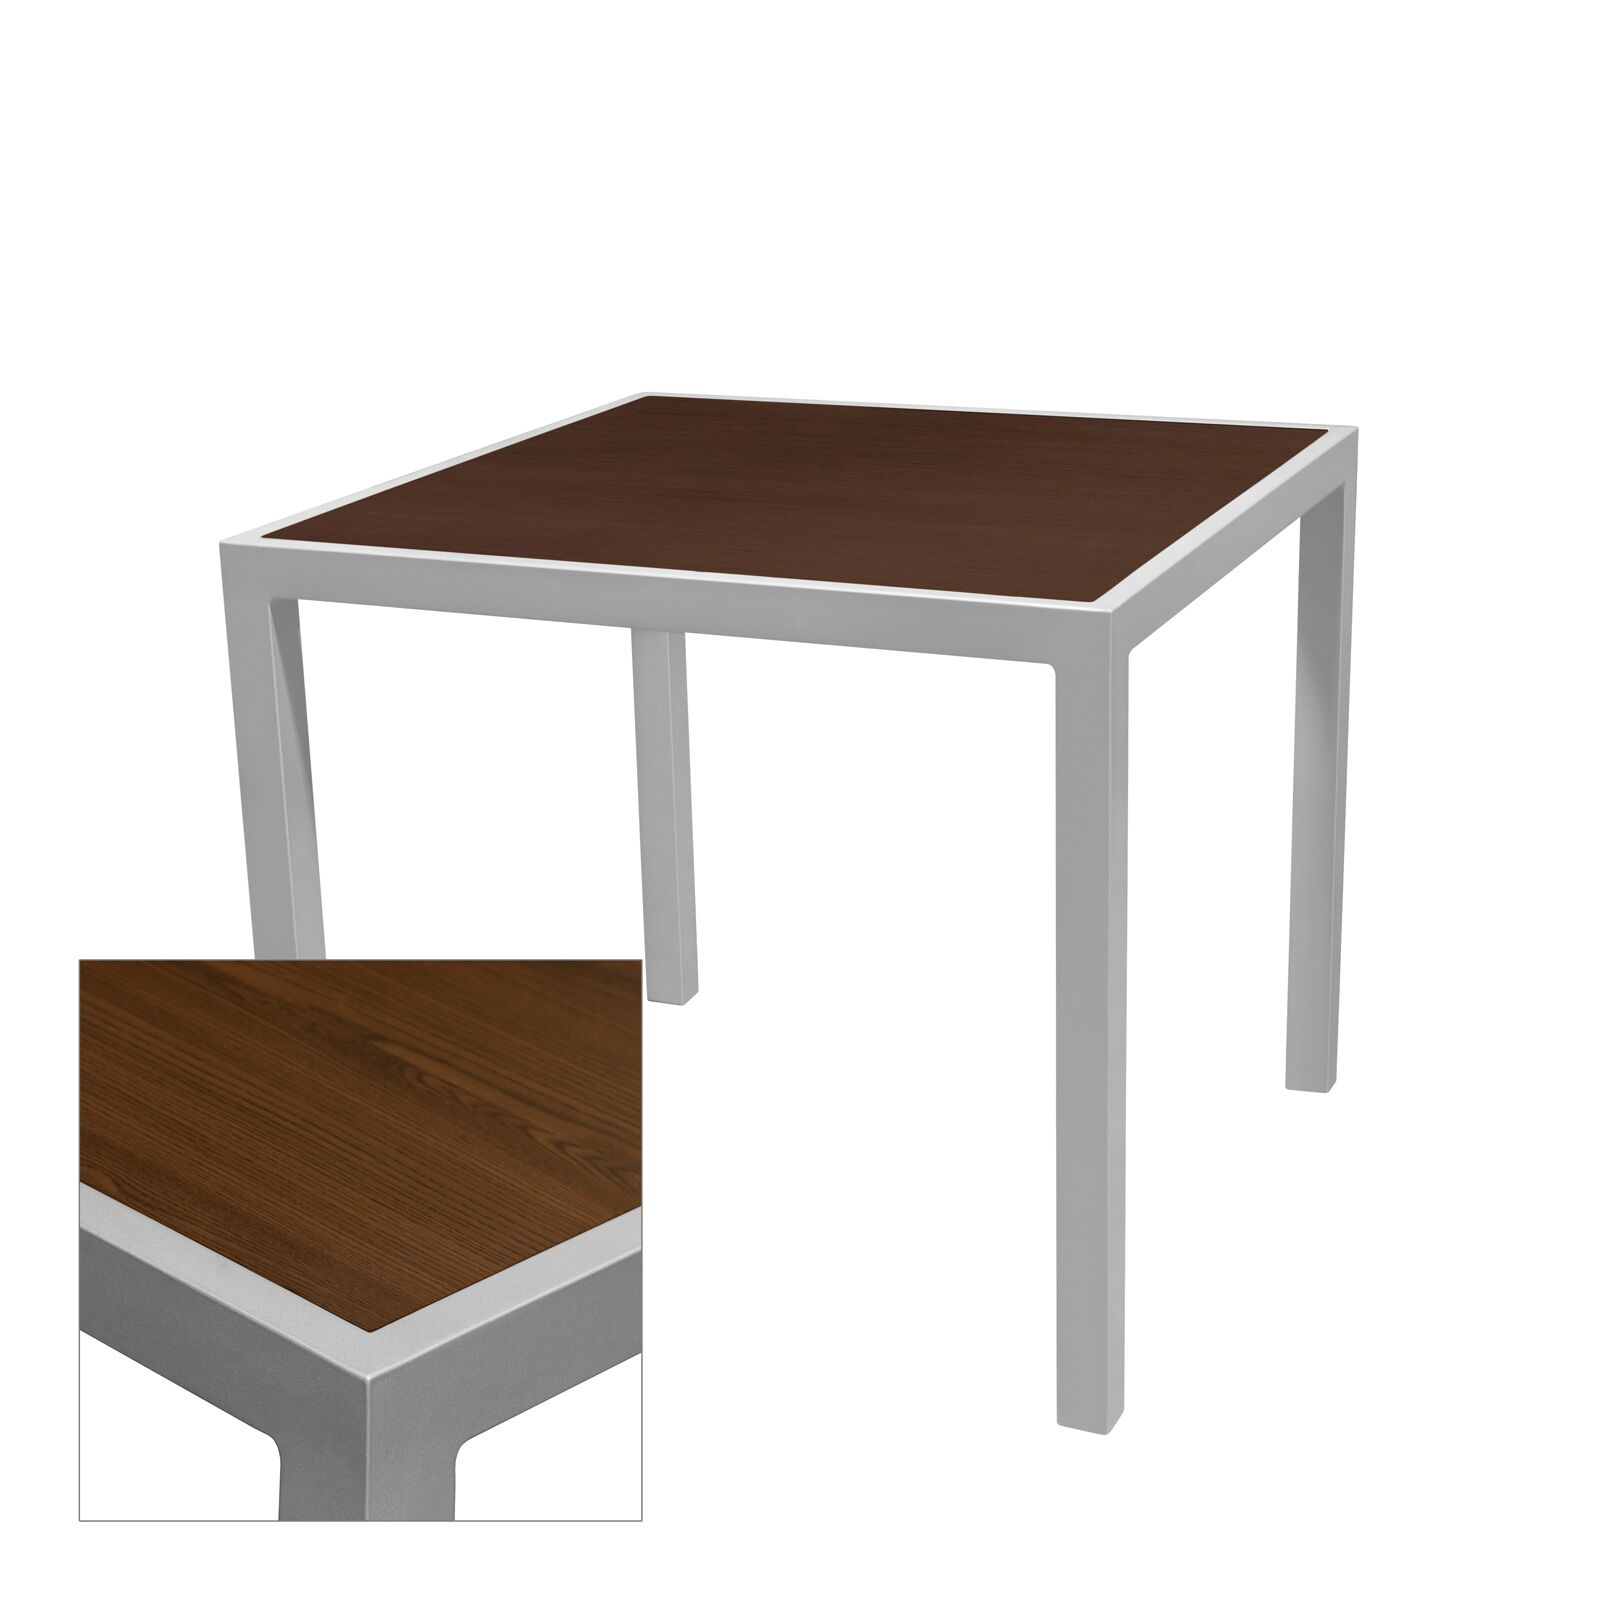 Corsa Dining Table Table Size: 36